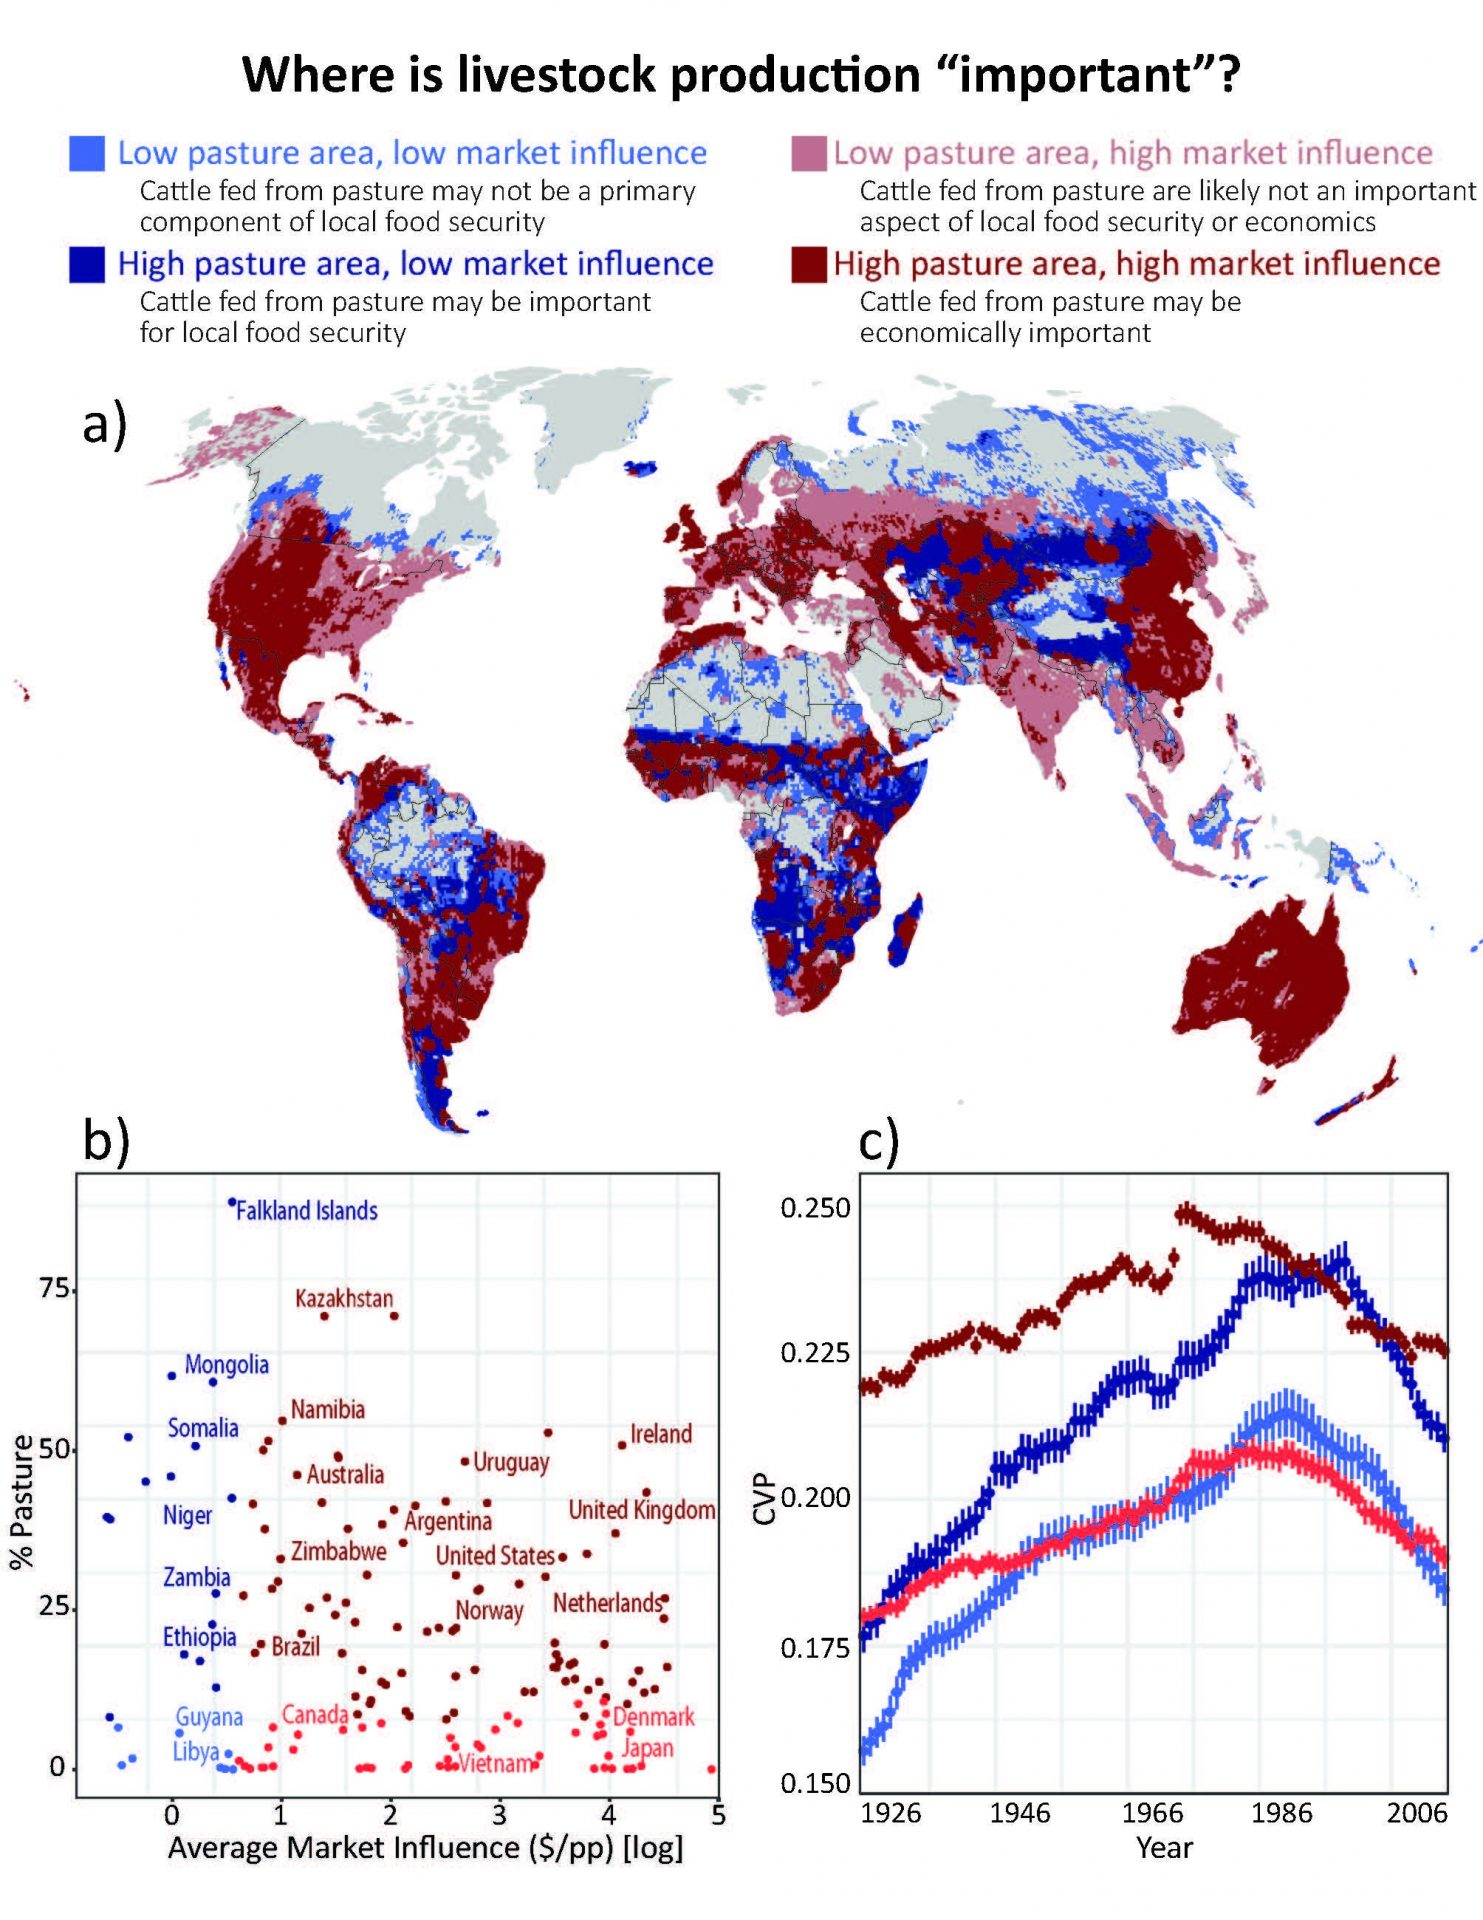 Areas where livestock grazing is important, economically or for food security, are mapped globally (a), summarized by country (b), and between-year precipitation variability trends between 1901 and 2014 are analyzed for each region (c). The importance of pastured livestock is defined by combining information on the area devoted to pasture and market influence. Overall between-year precipitation variability is highest in areas where livestock grazing is economically important (dark red), but it has increased the most over the past century in areas where livestock grazing is suspected to be important for local food access (dark blue). (Image: via Nature Climate Change) Read more at: https://phys.org/news/2018-02-global-grazing-increasingly-vulnerable-climate.html#jCp